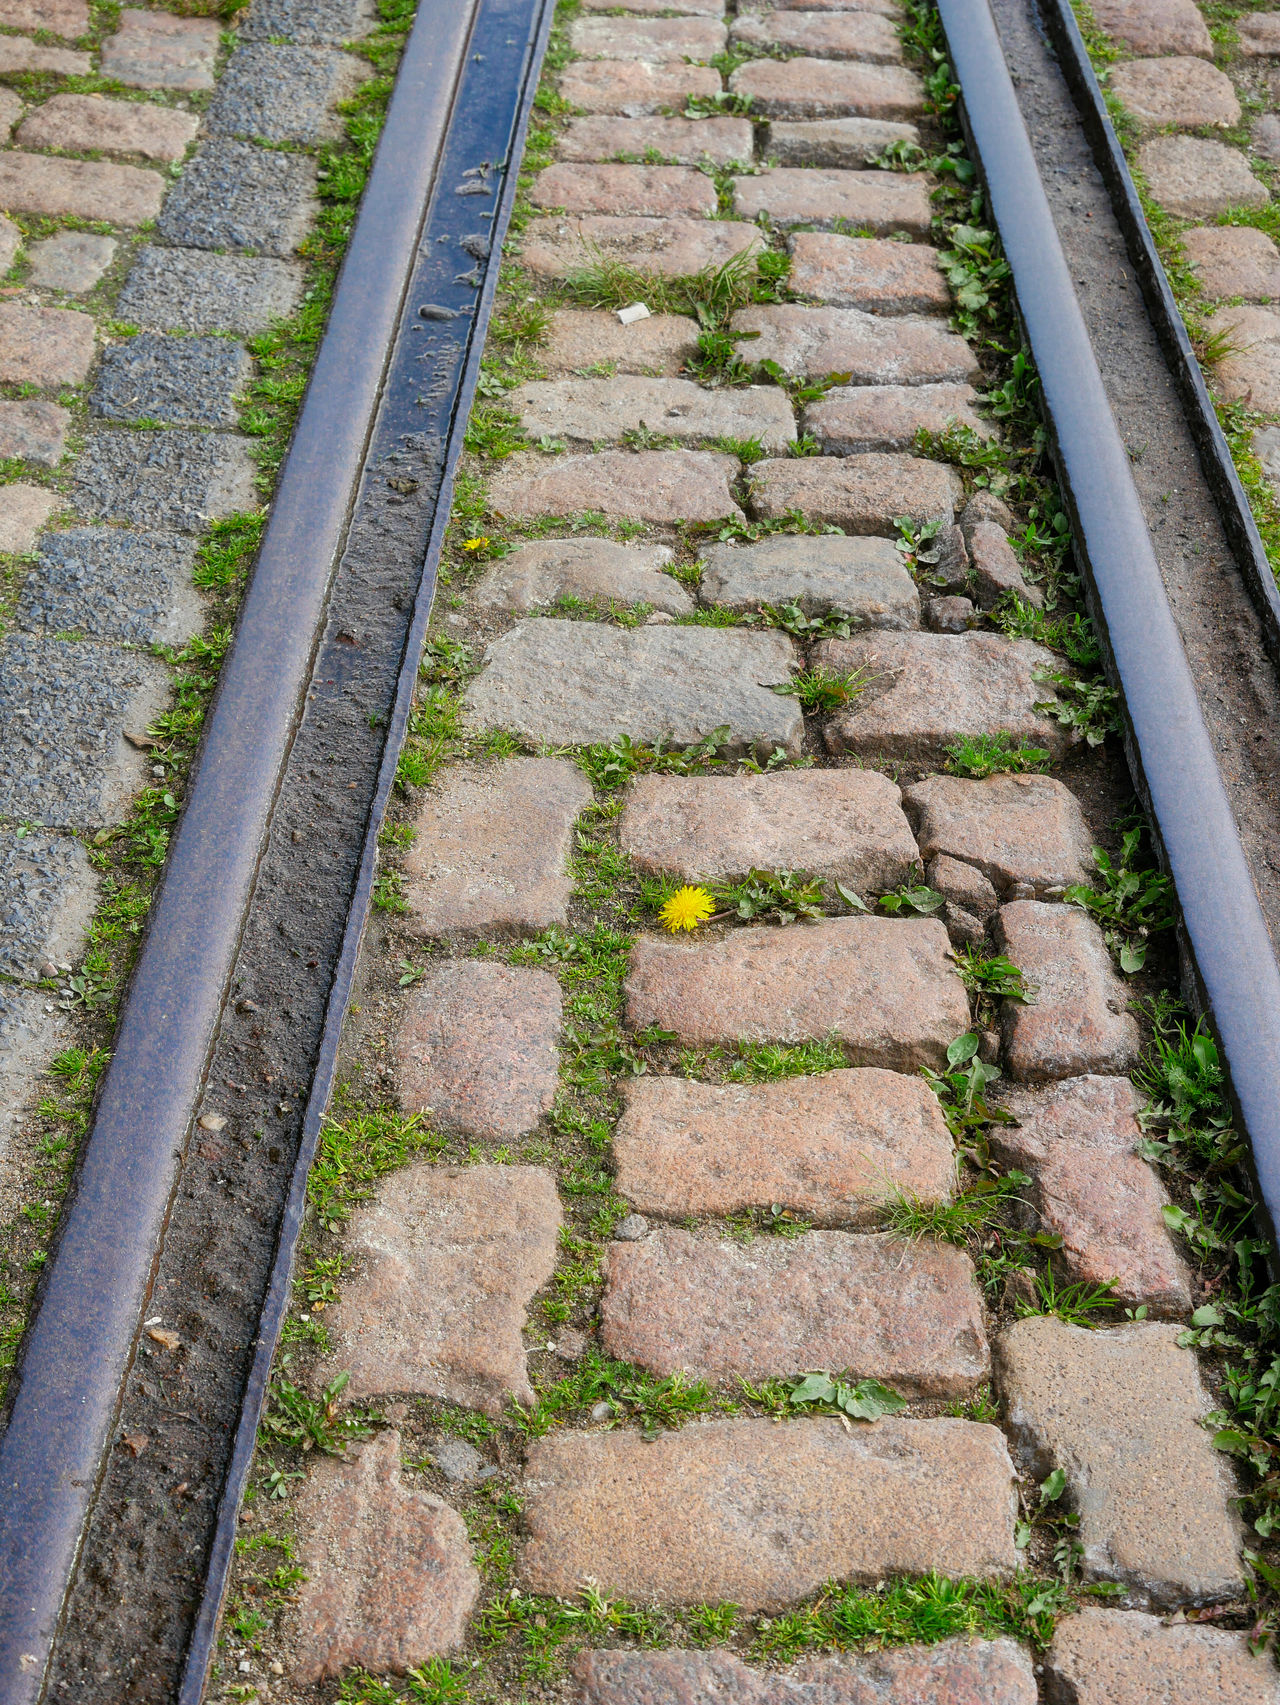 BYOPaper! Dandelion Day High Angle View Natural Beauty Natural Power Nature Nature On Your Doorstep Nature Photography Nature_collection Naturelovers No People Outdoors Rail Transportation Railroad Track Rails Stone Material Stone Pavement The Street Photographer - 2017 EyeEm Awards Yellow Flower